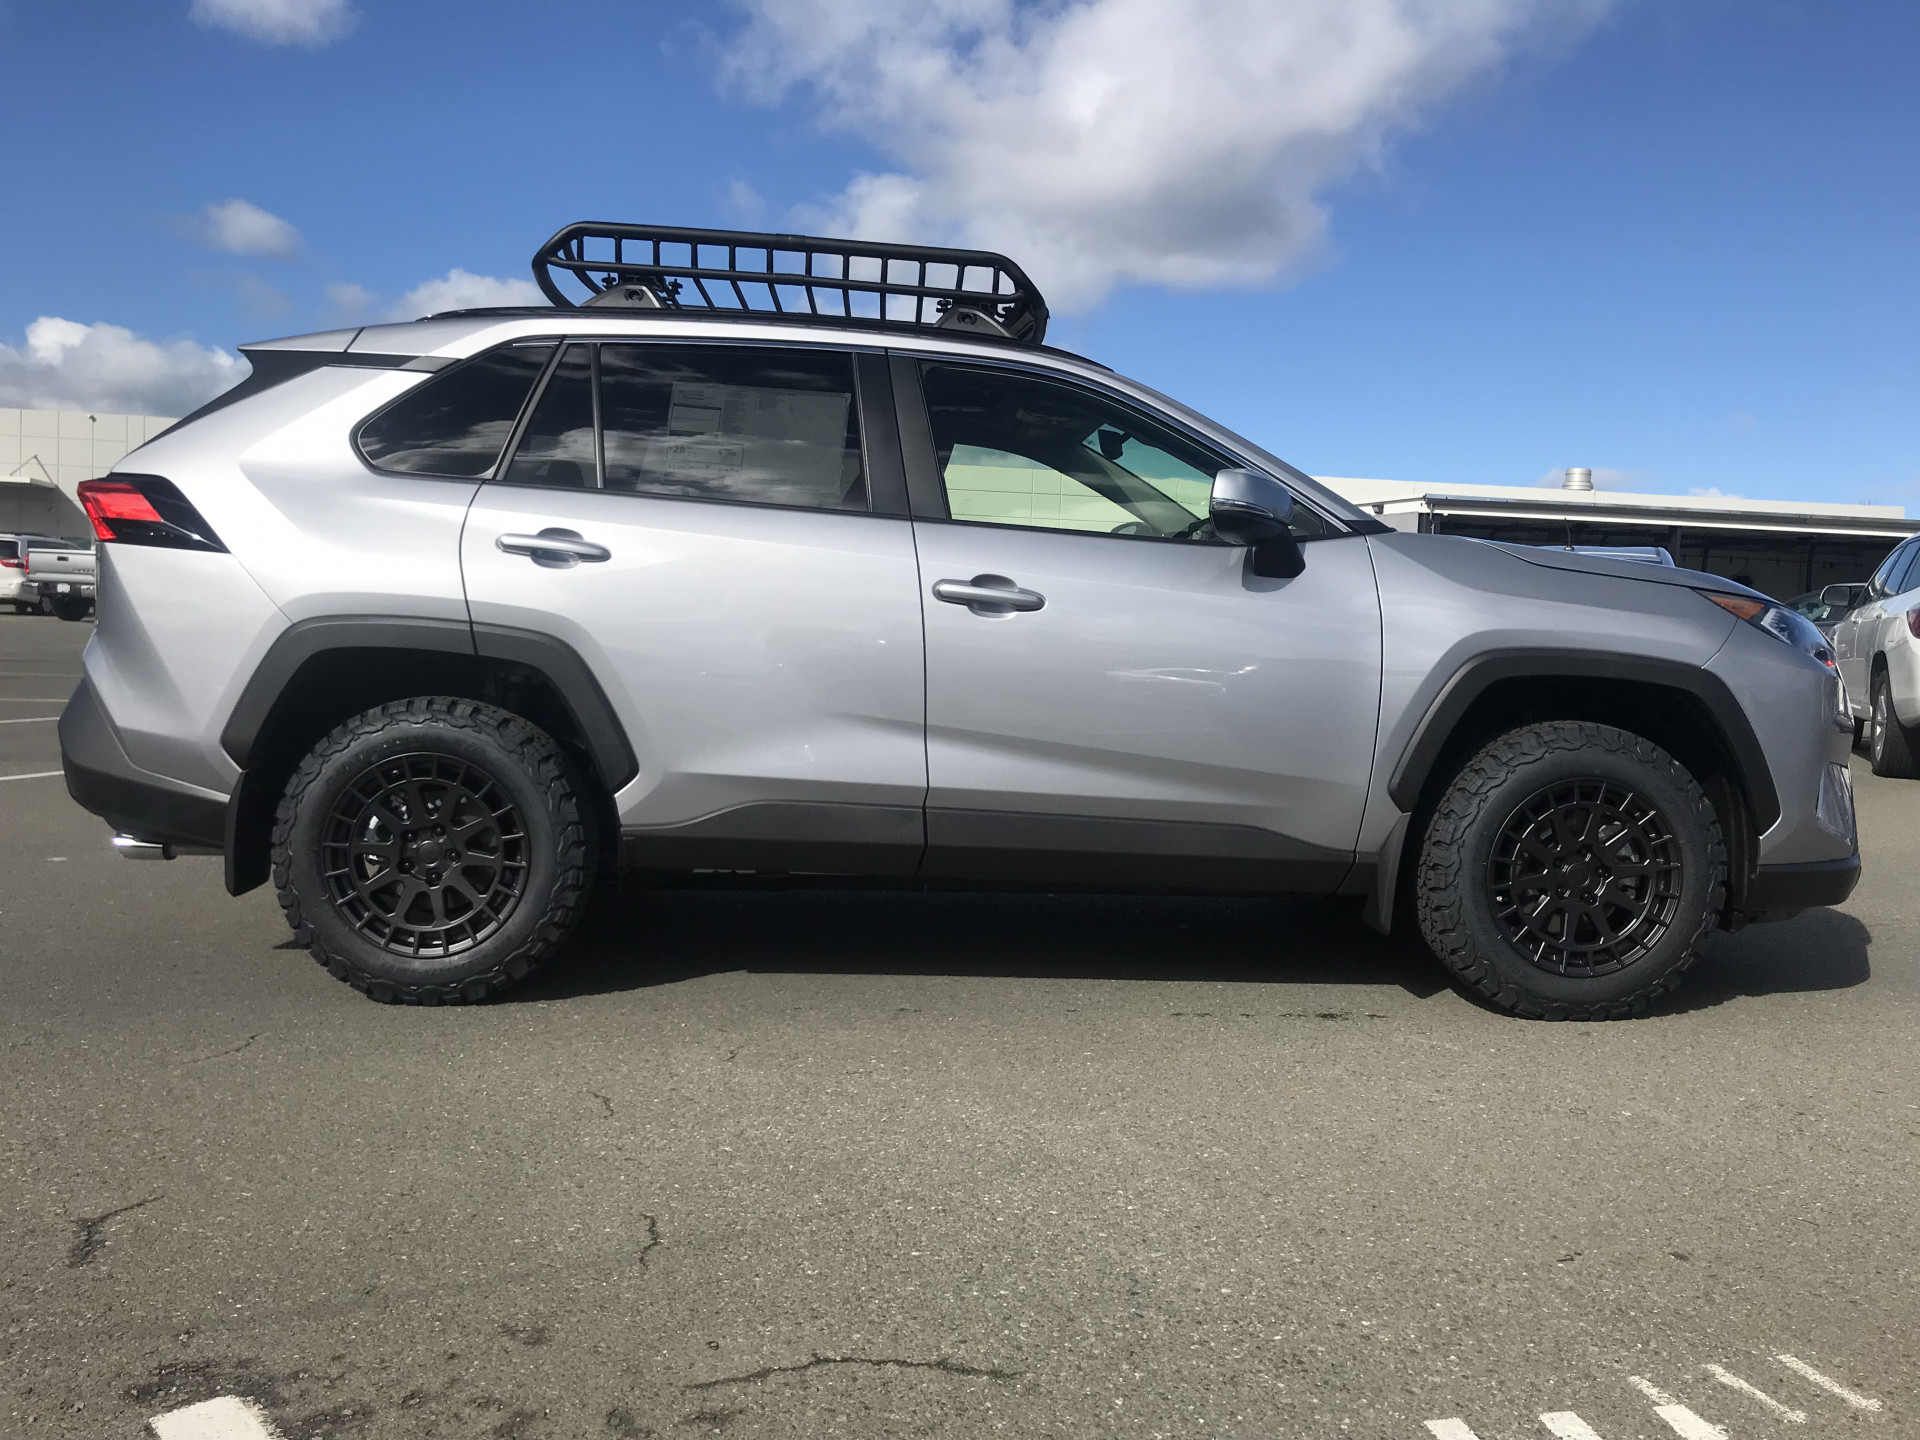 Toyota RAV4 Overland Black Rhino Boxer 17-in with 225/65R17 and ROLA cargo basket